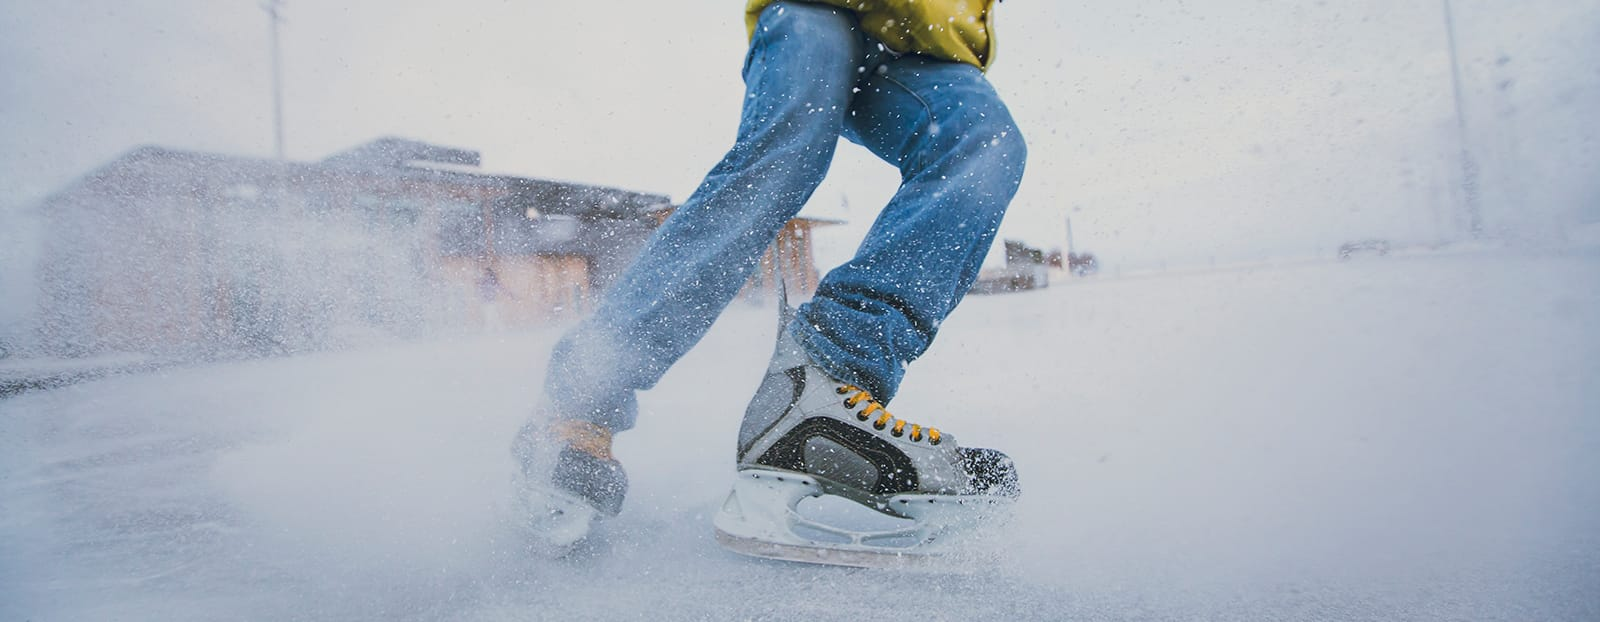 skater spraying snow at camera